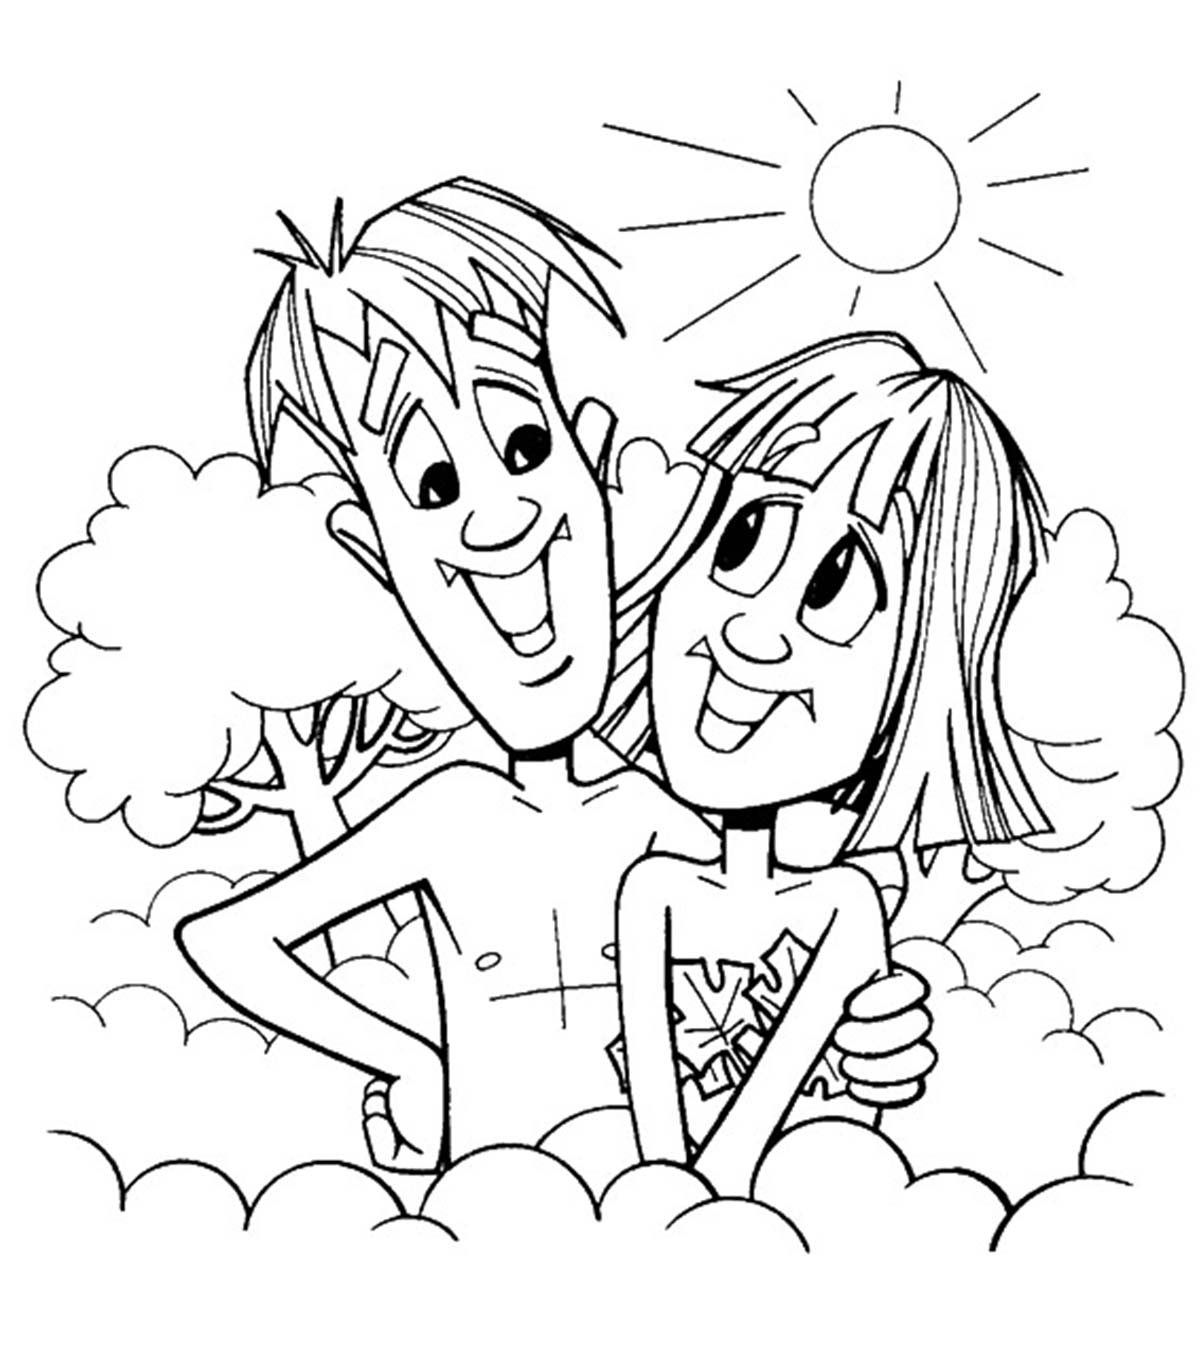 coloring adam and eve story for kids free printable adam and eve coloring pages for kids and story kids coloring eve for adam